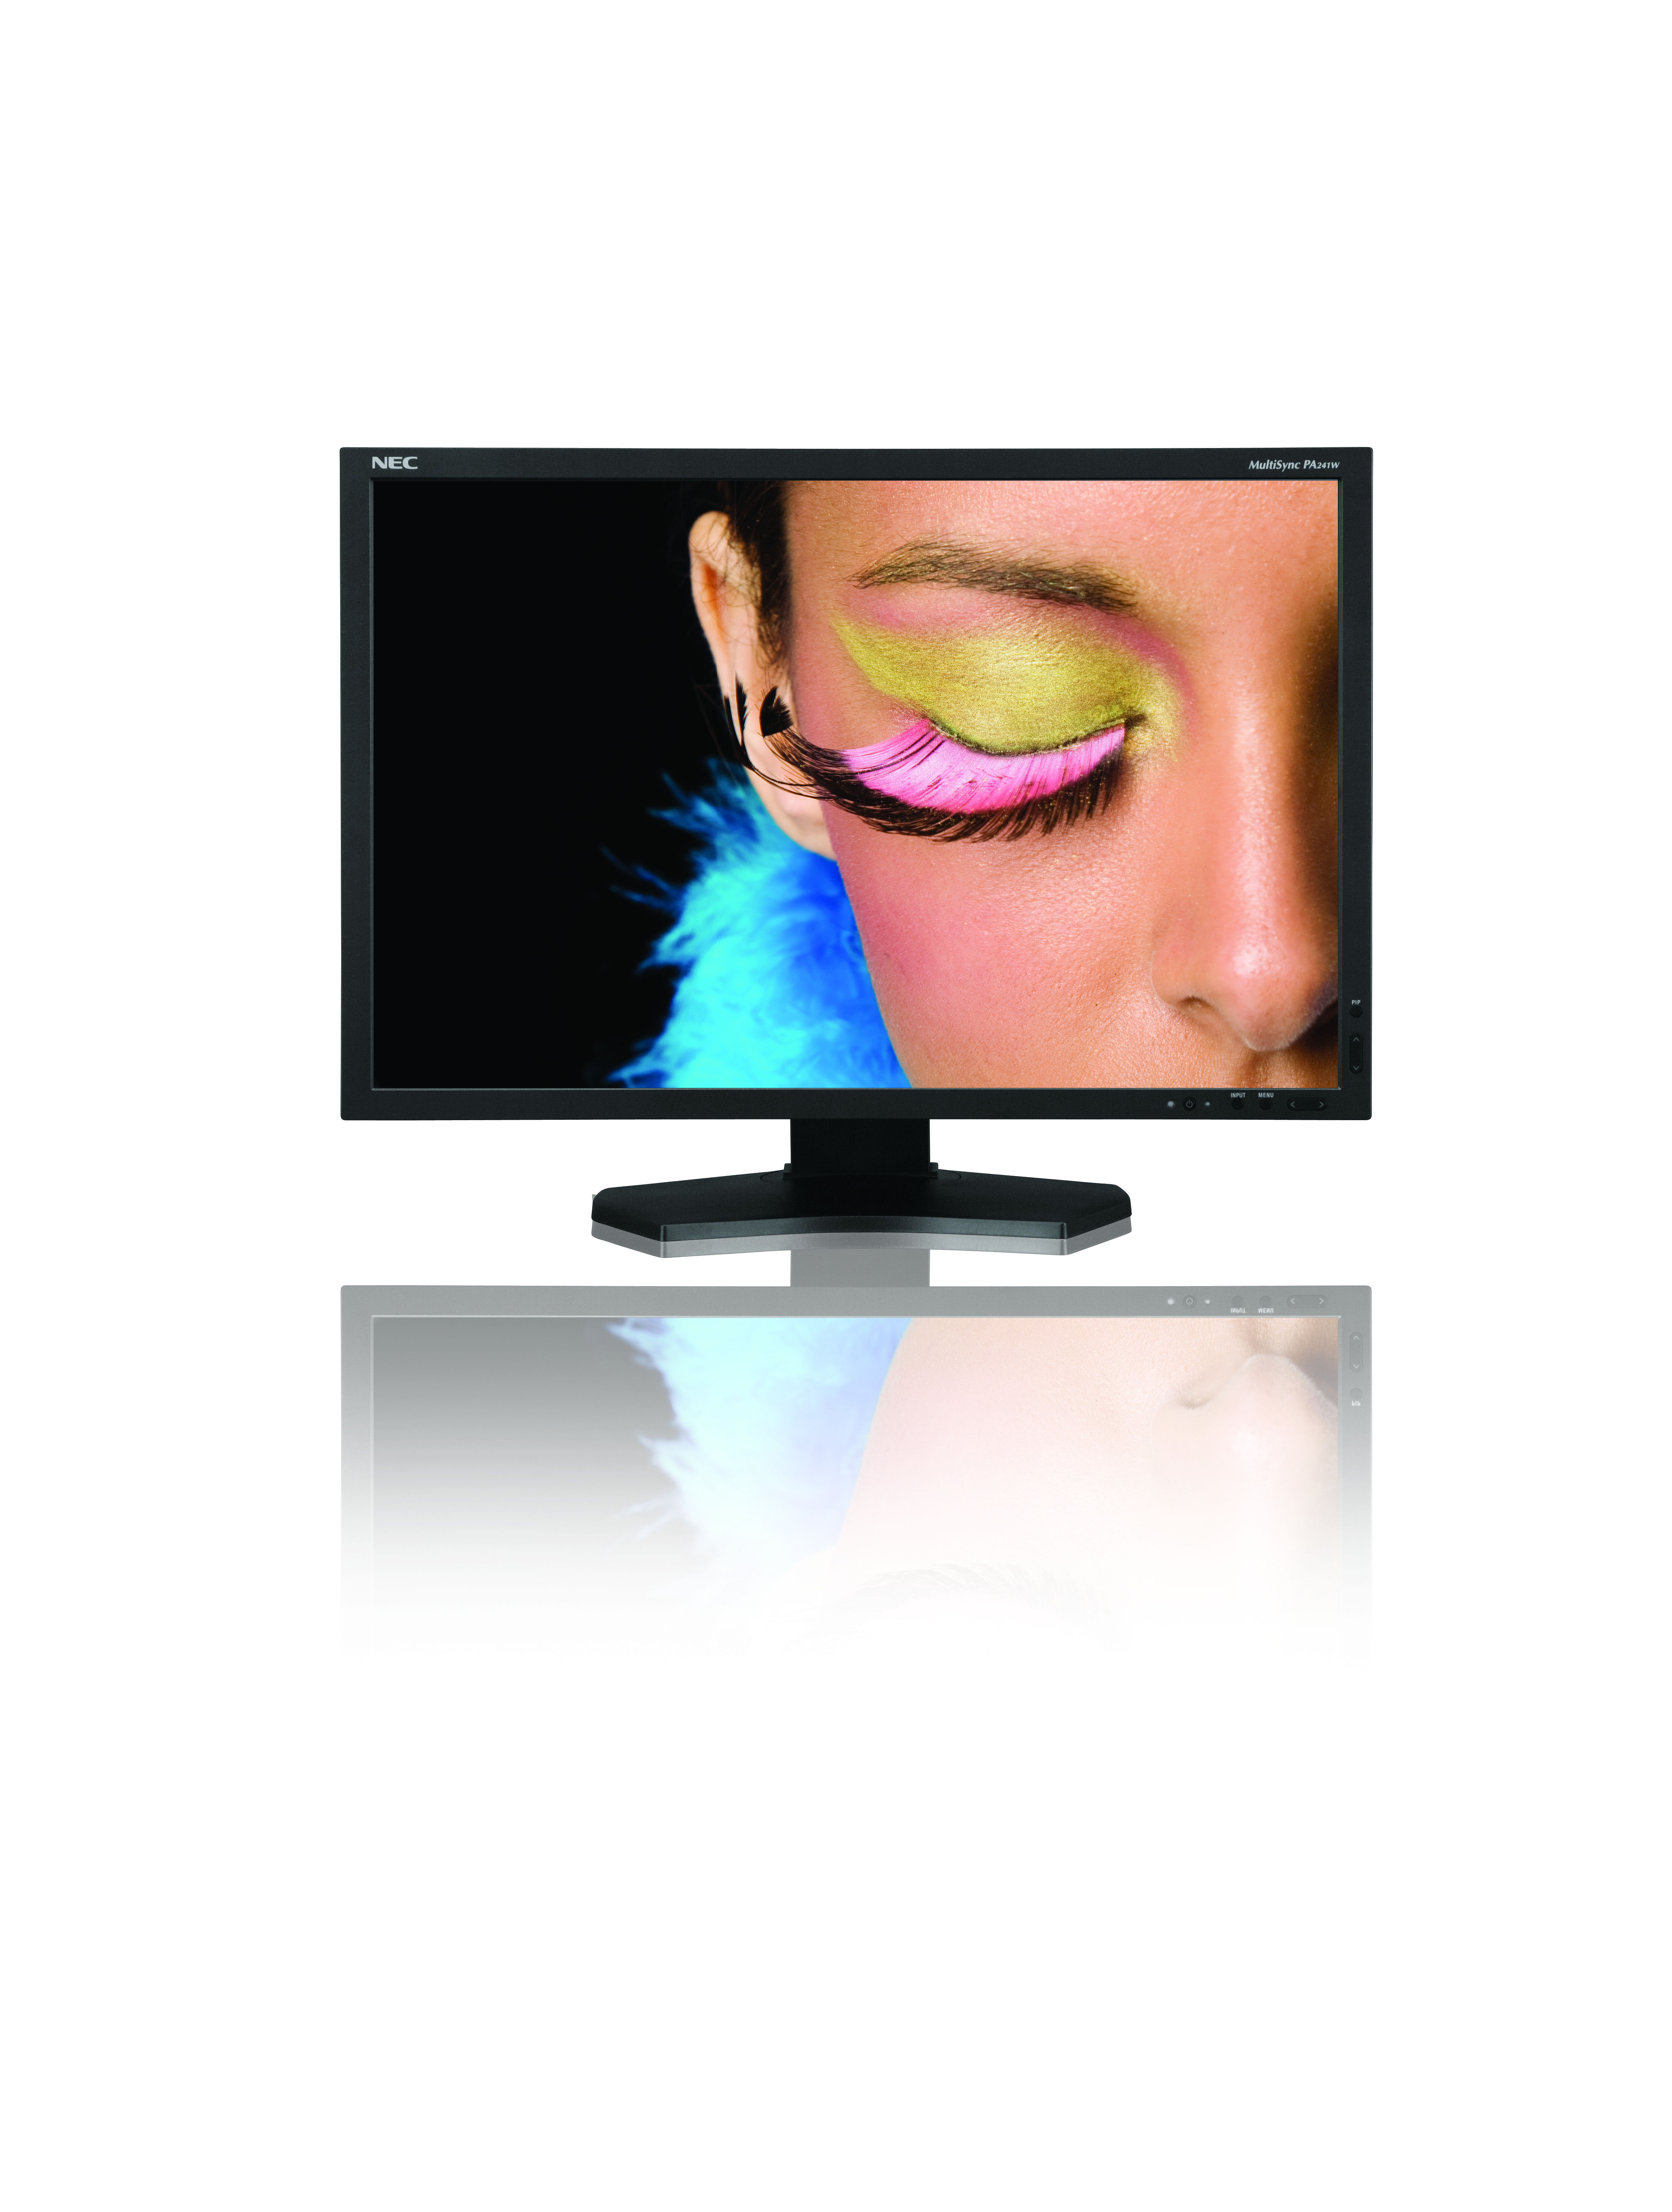 NEC LCD SPECTRAVIEW REFERENCE 242 - 60003543